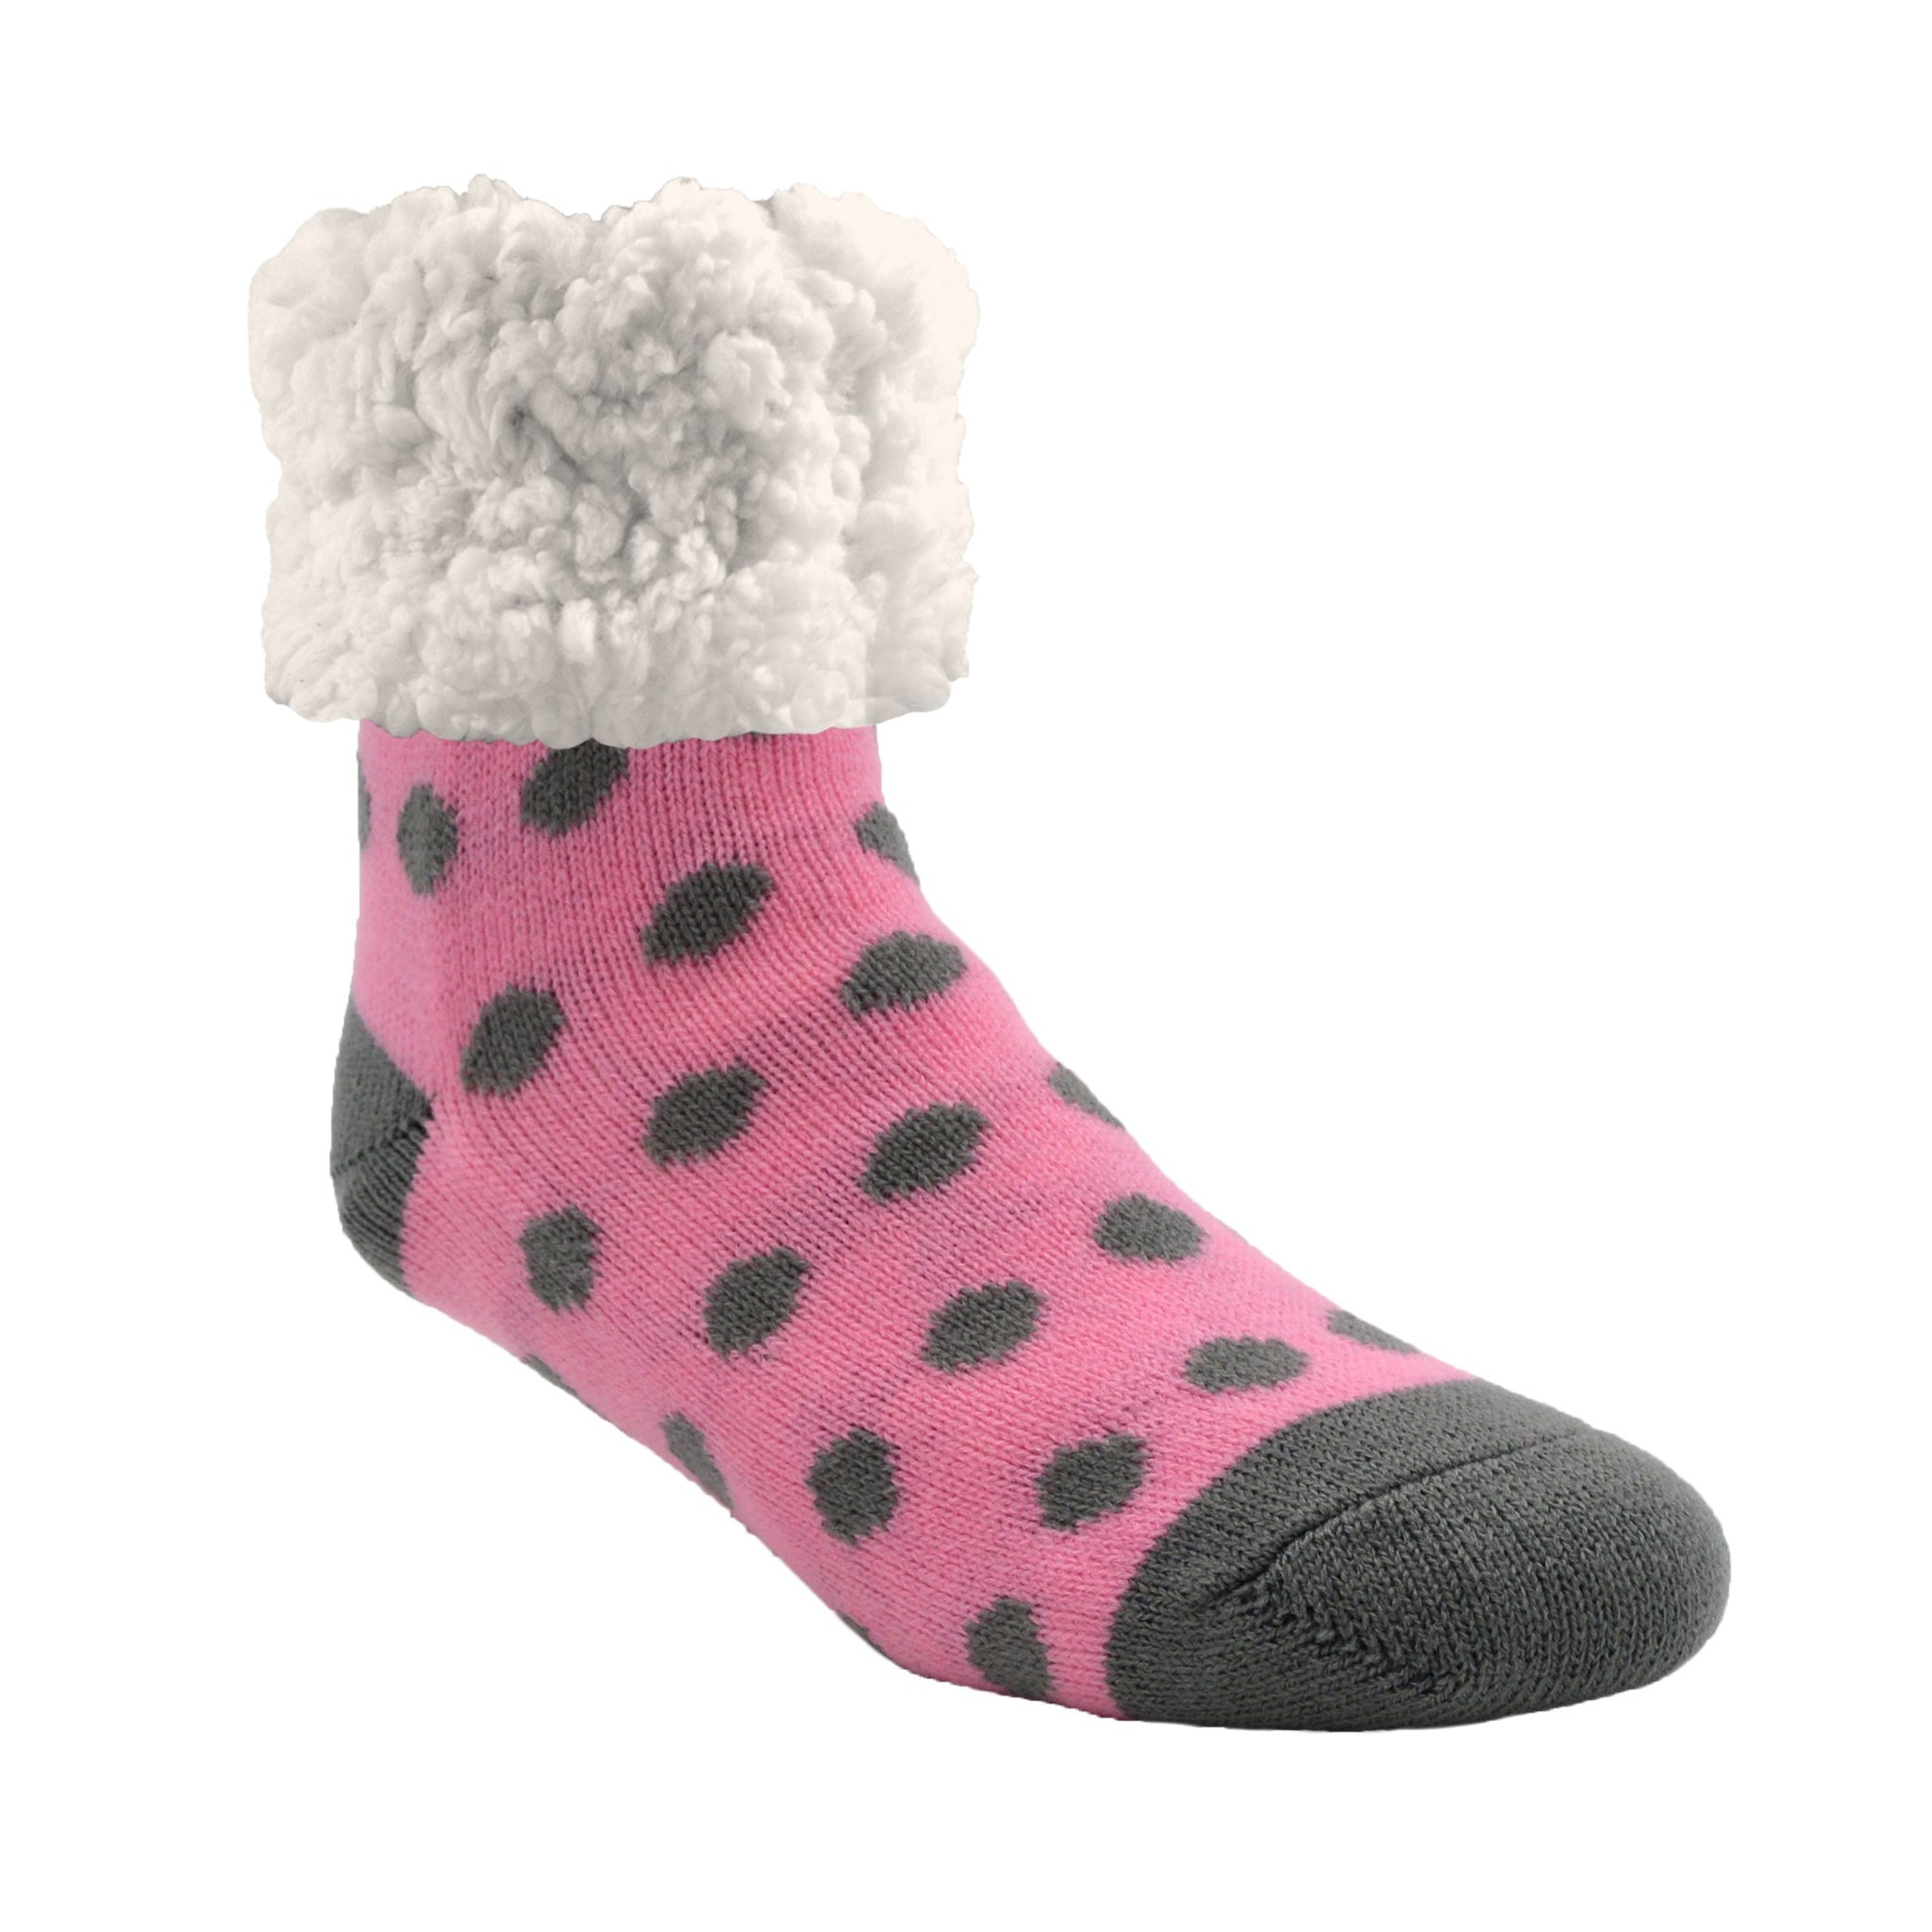 Classic Slipper Socks | Polka Dot Pink